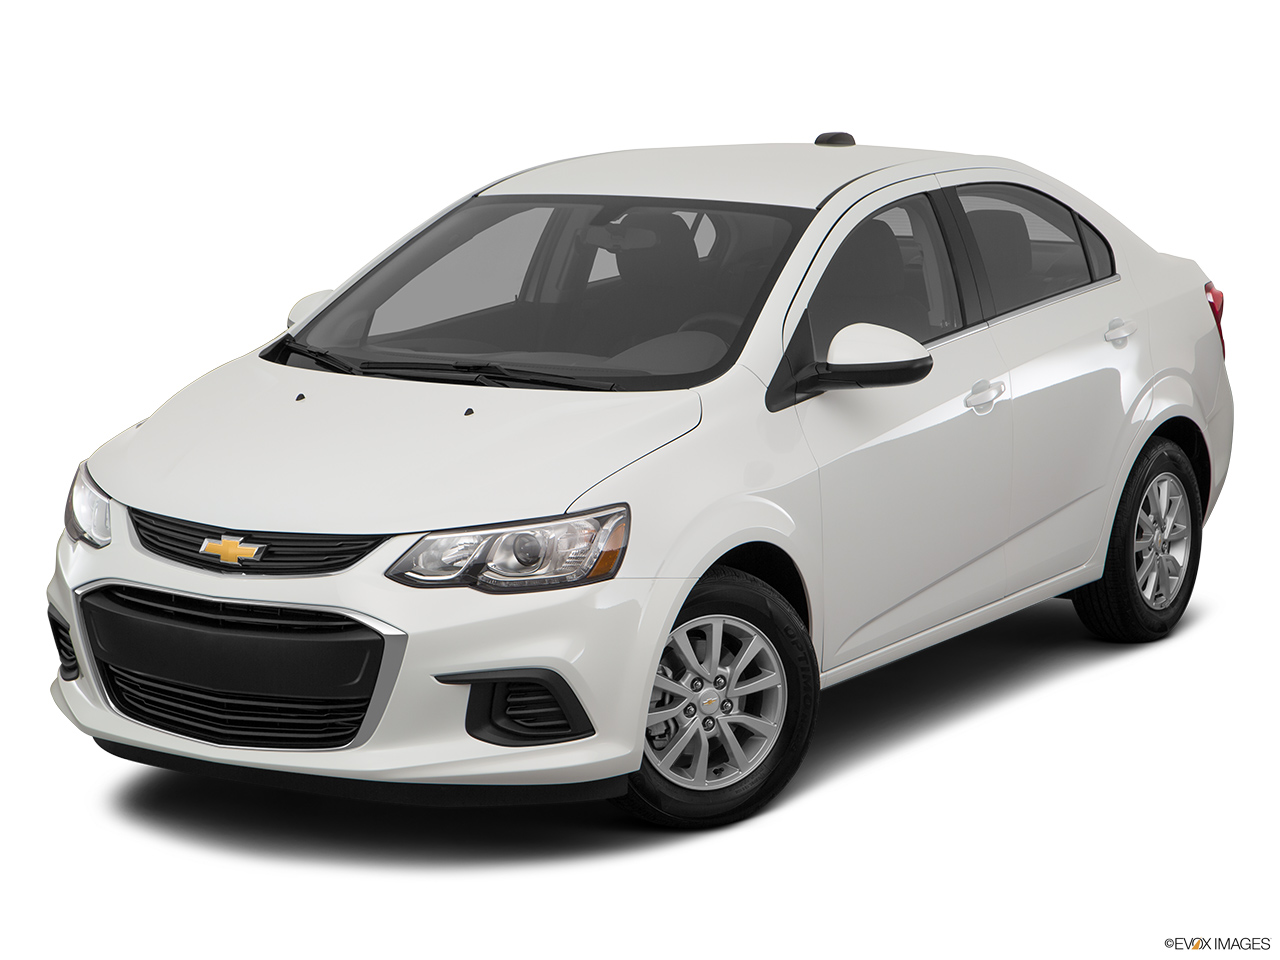 2017 Chevrolet Sonic Prices In Qatar Gulf Specs Amp Reviews